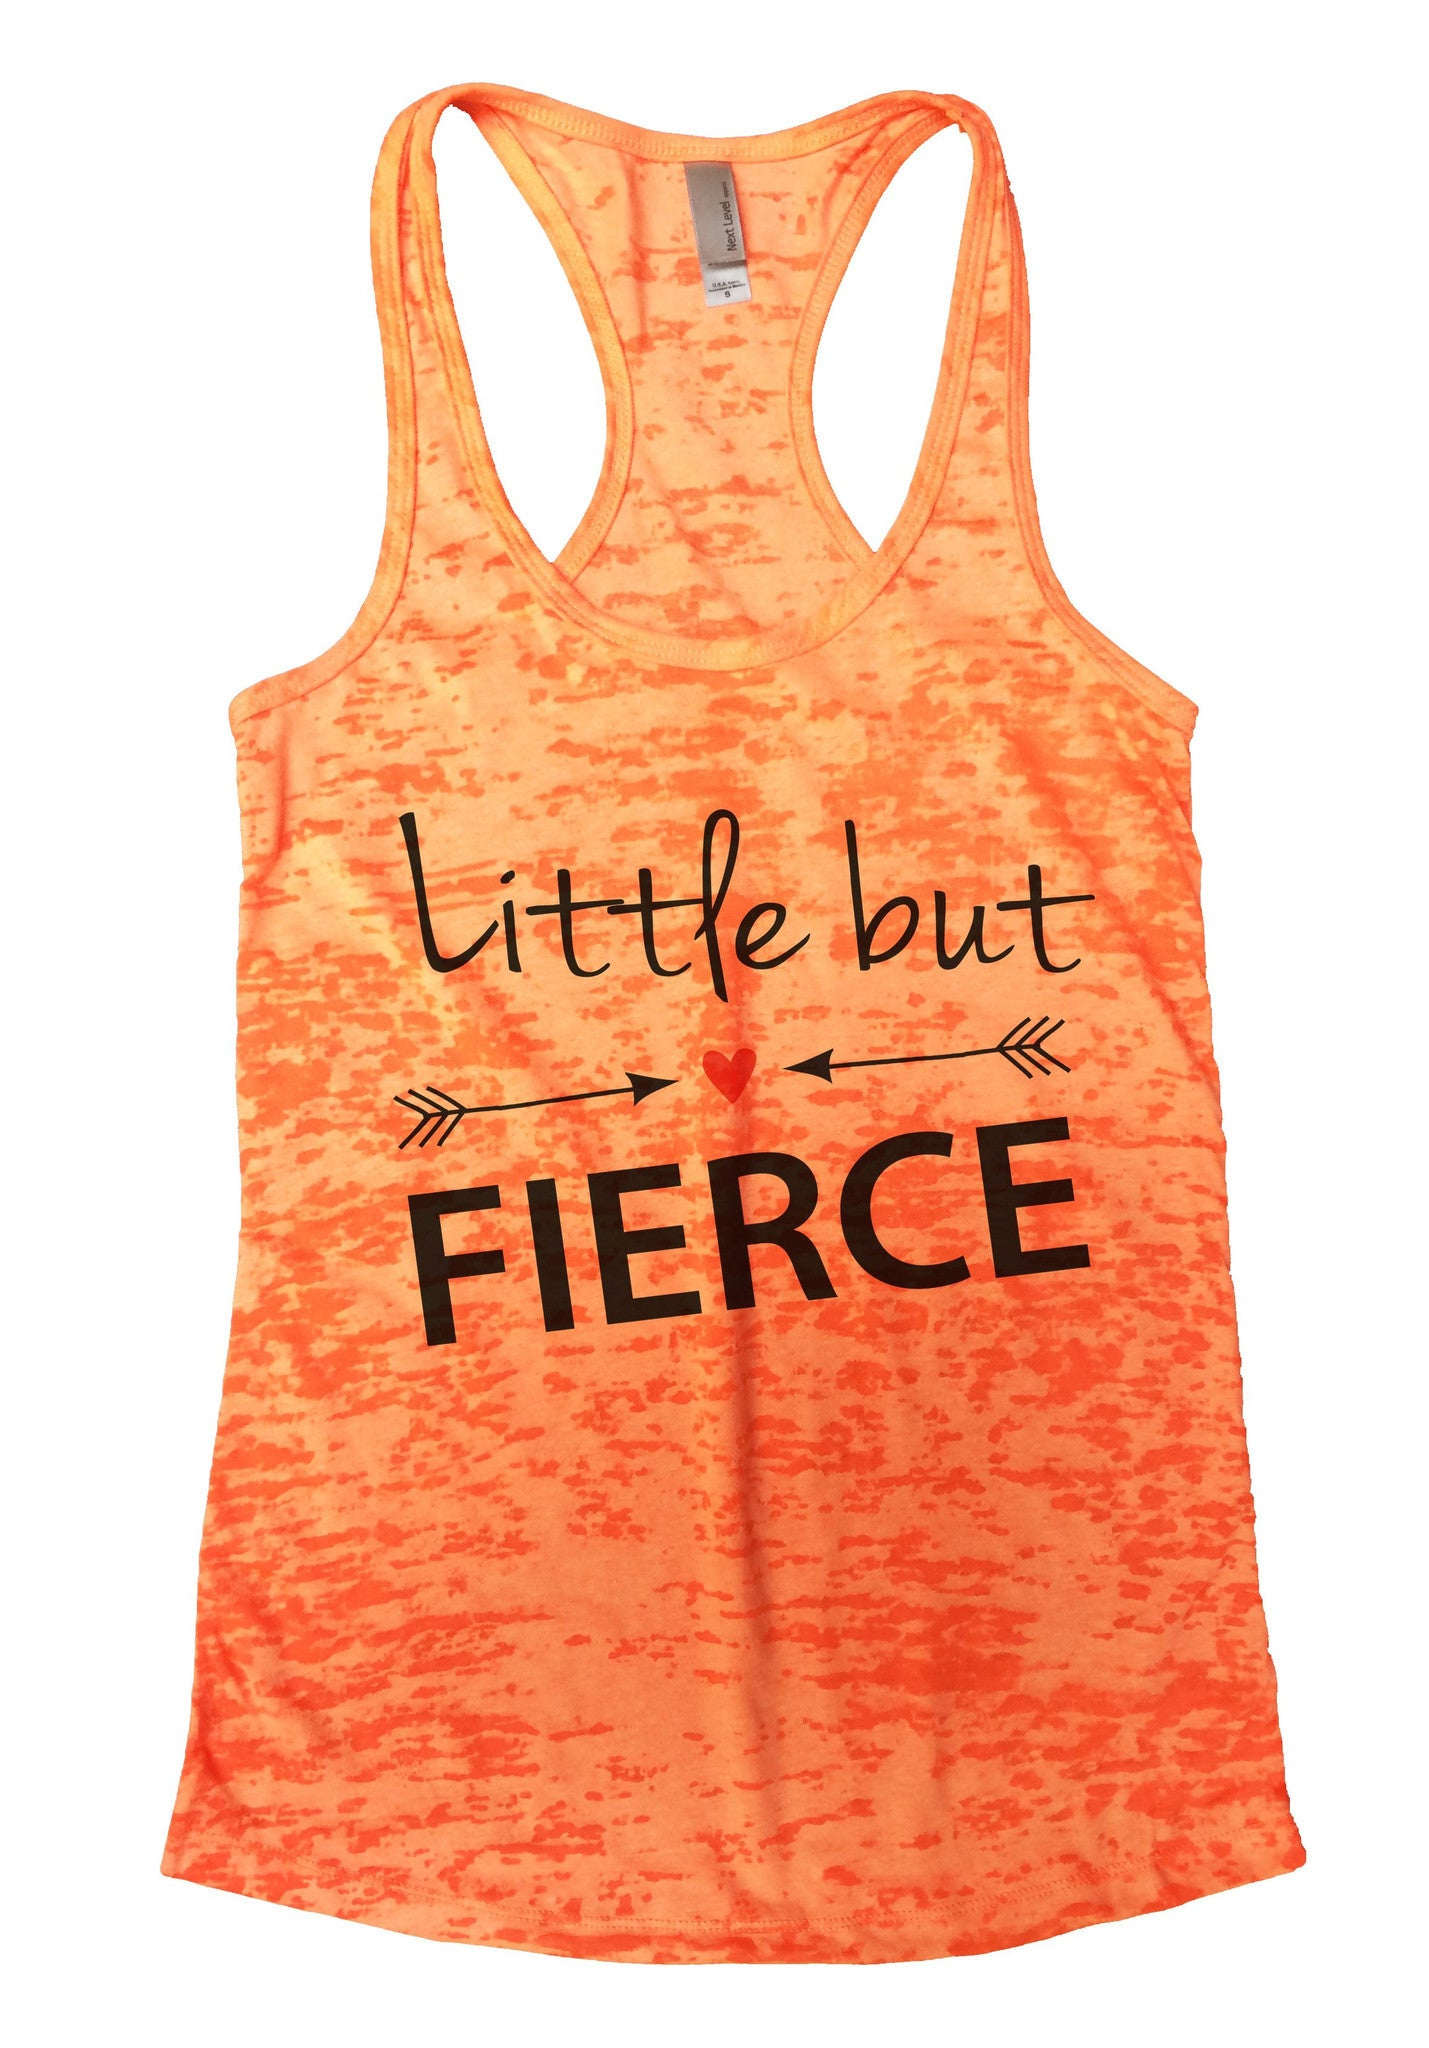 Little But Fierce Burnout Tank Top By BurnoutTankTops.com - 787 - Funny Shirts Tank Tops Burnouts and Triblends  - 3